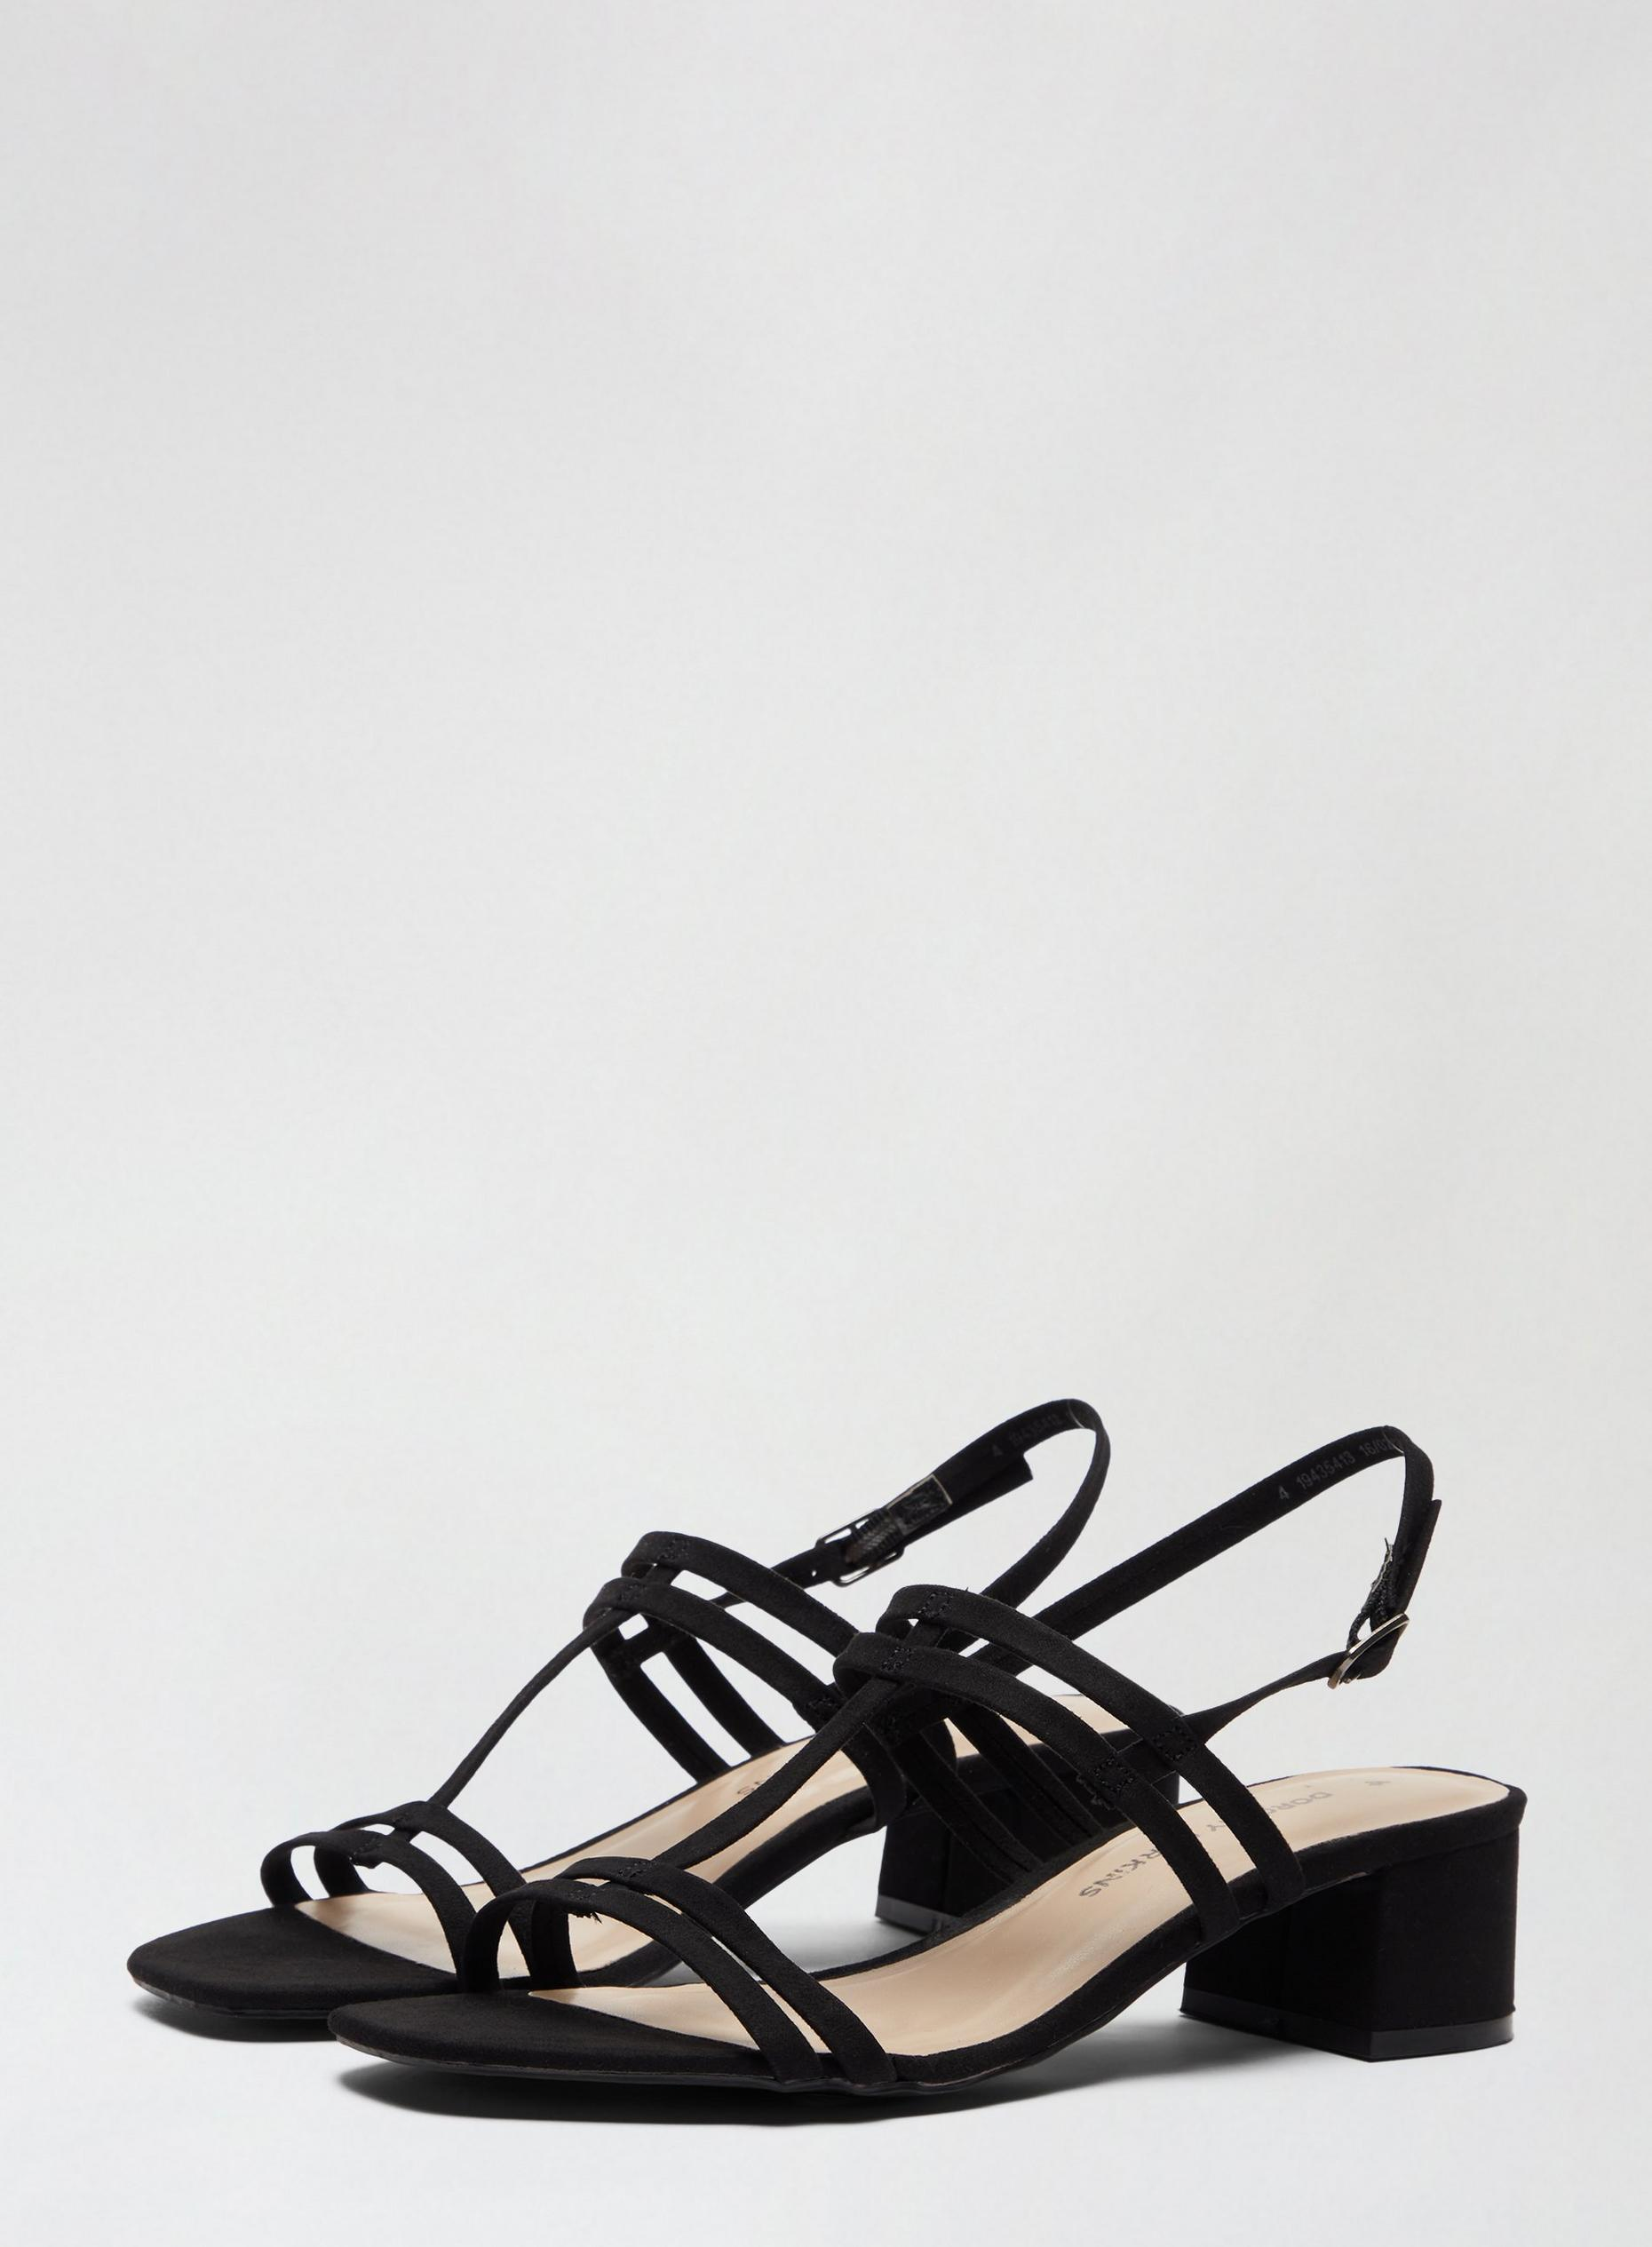 Black Square Heeled Sandals